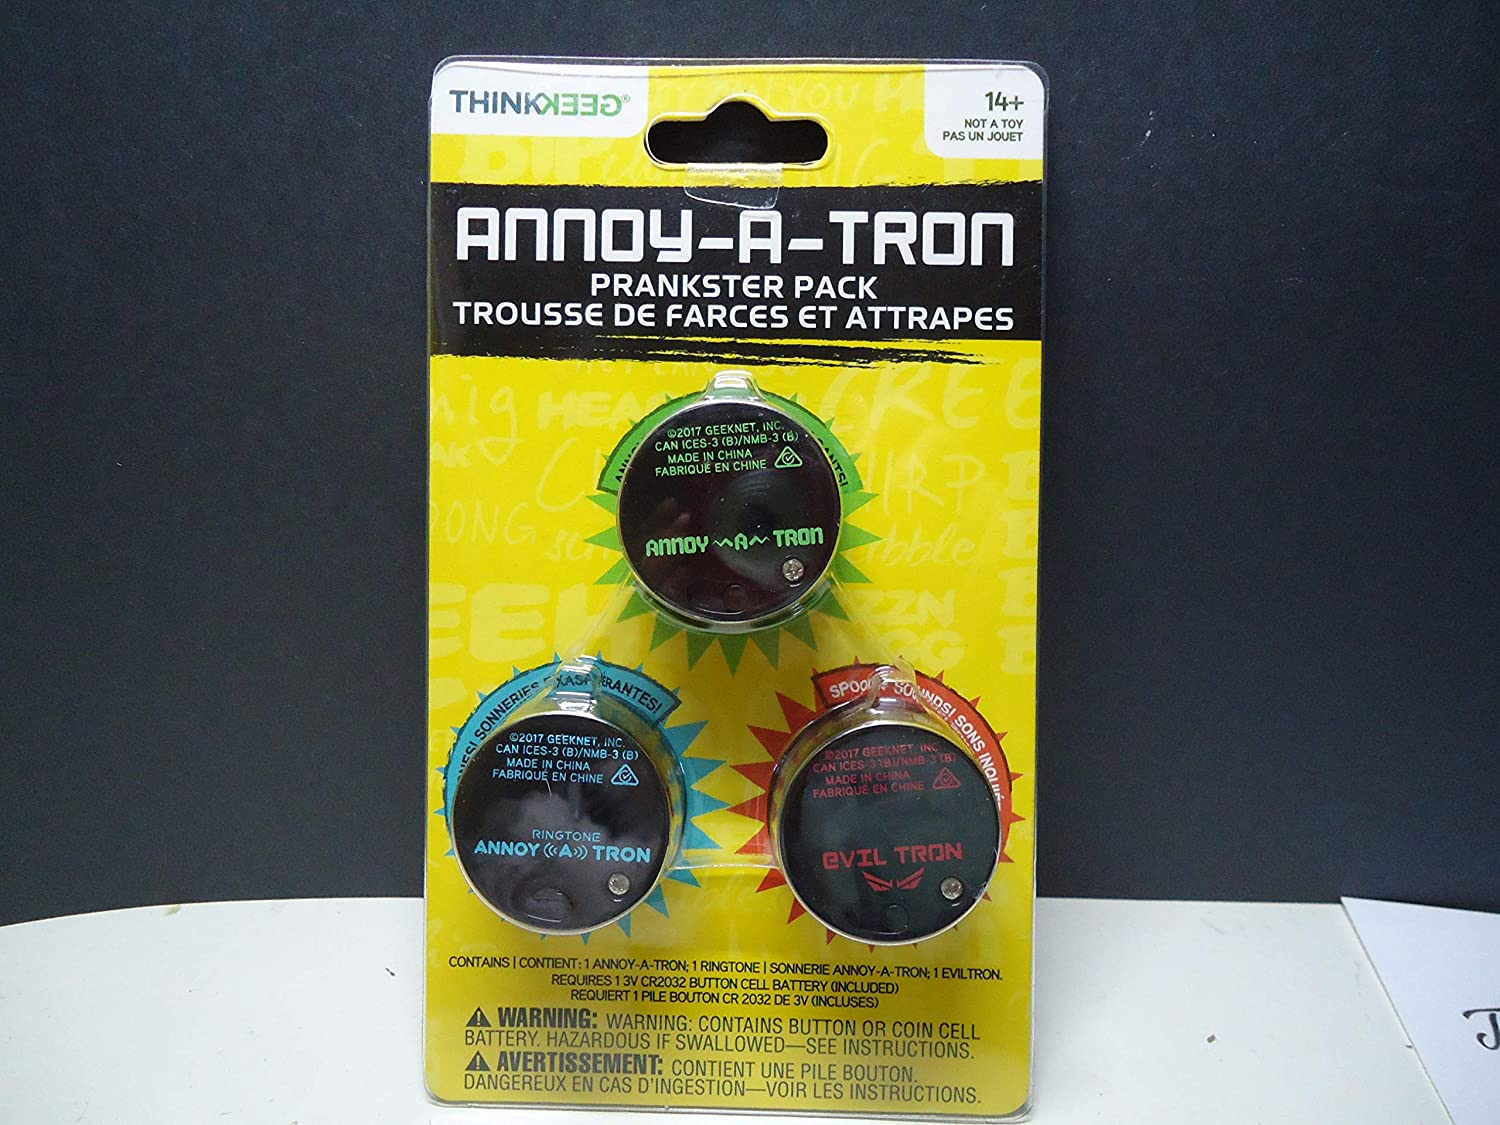 Amazon.es: ANNOY-A-TRON Prankster Pack by Think Geek Prankster Pack